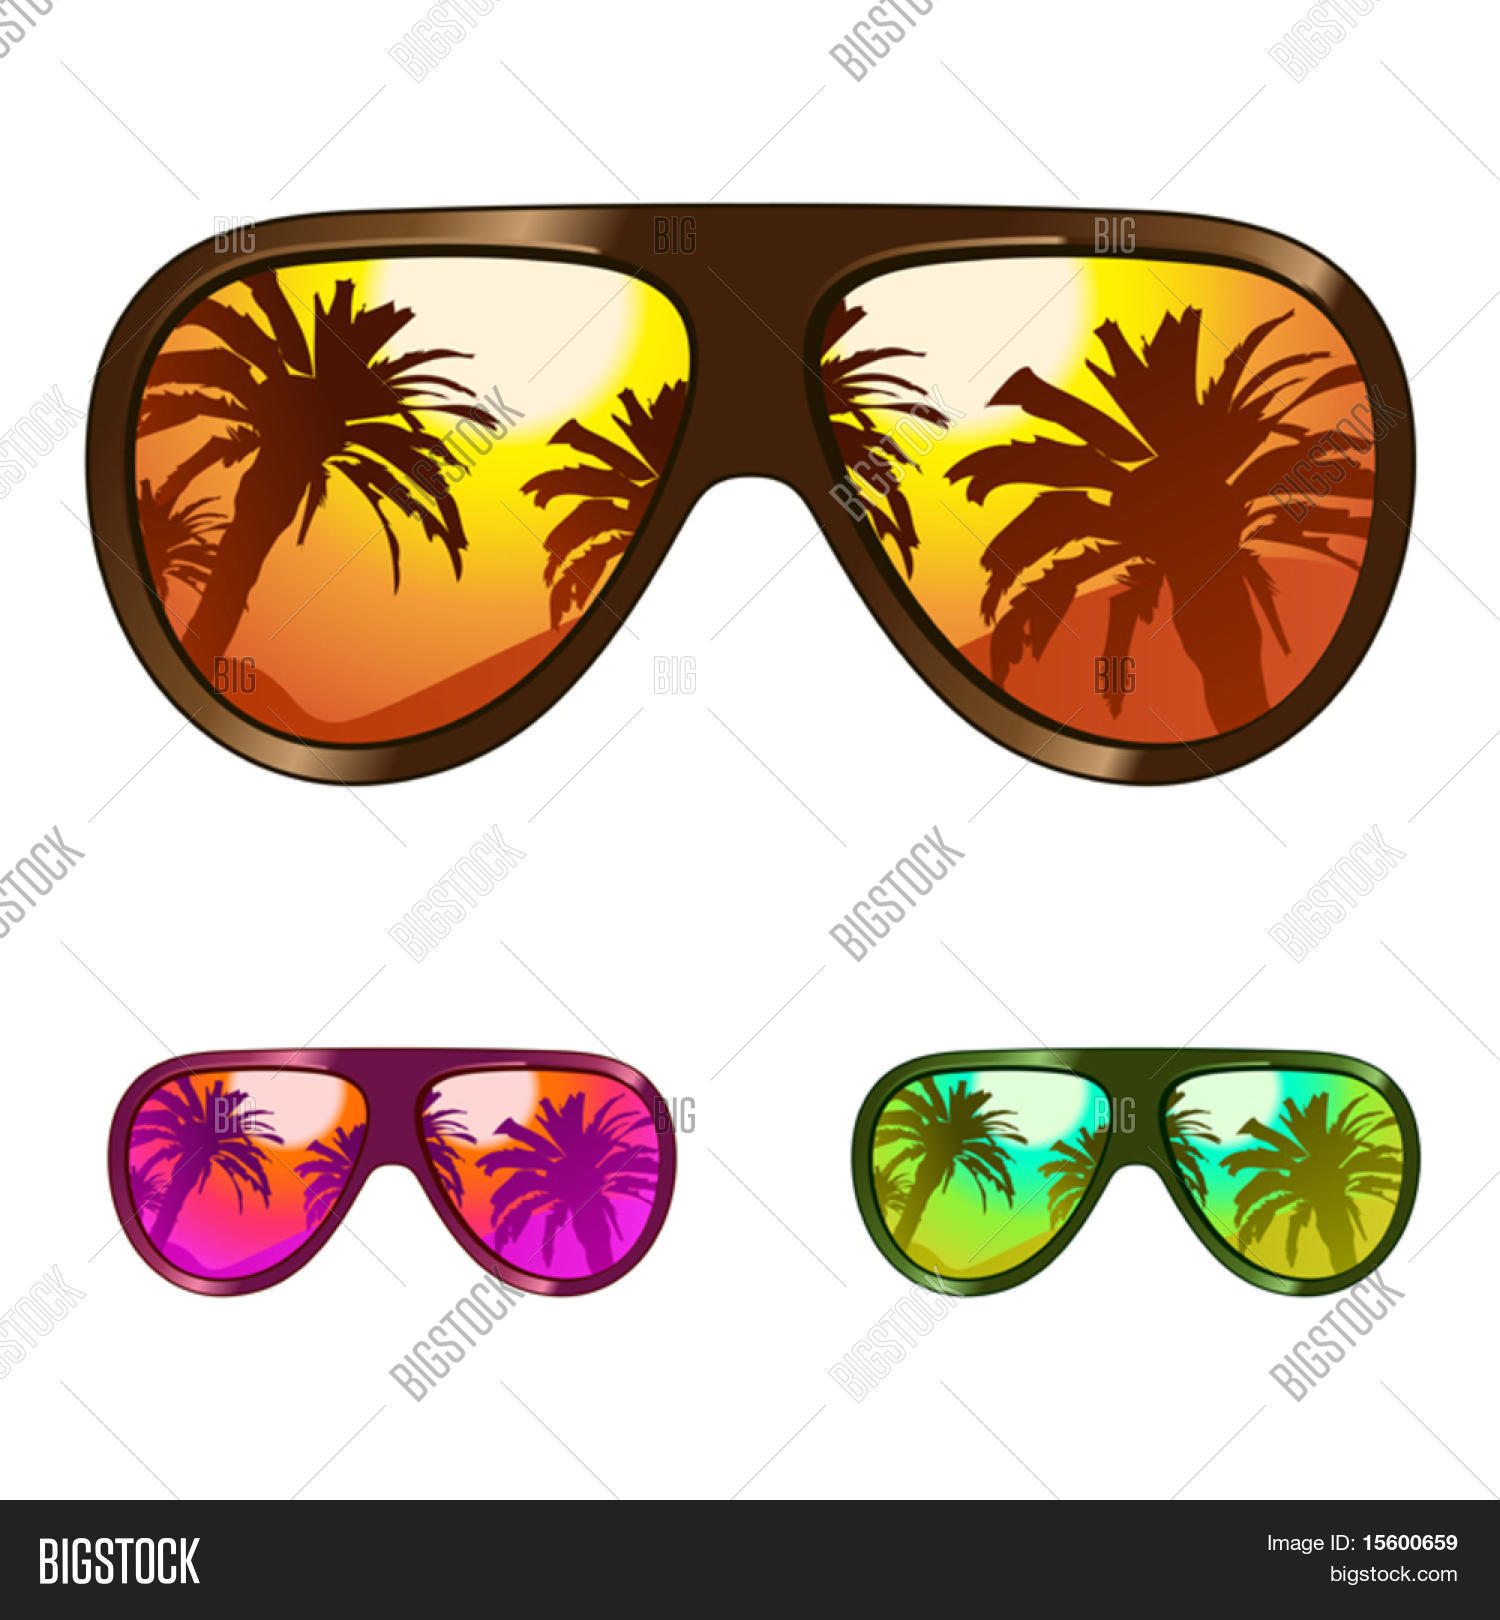 43b7c4706fa Sunglasses Reflection Of Beach 4736